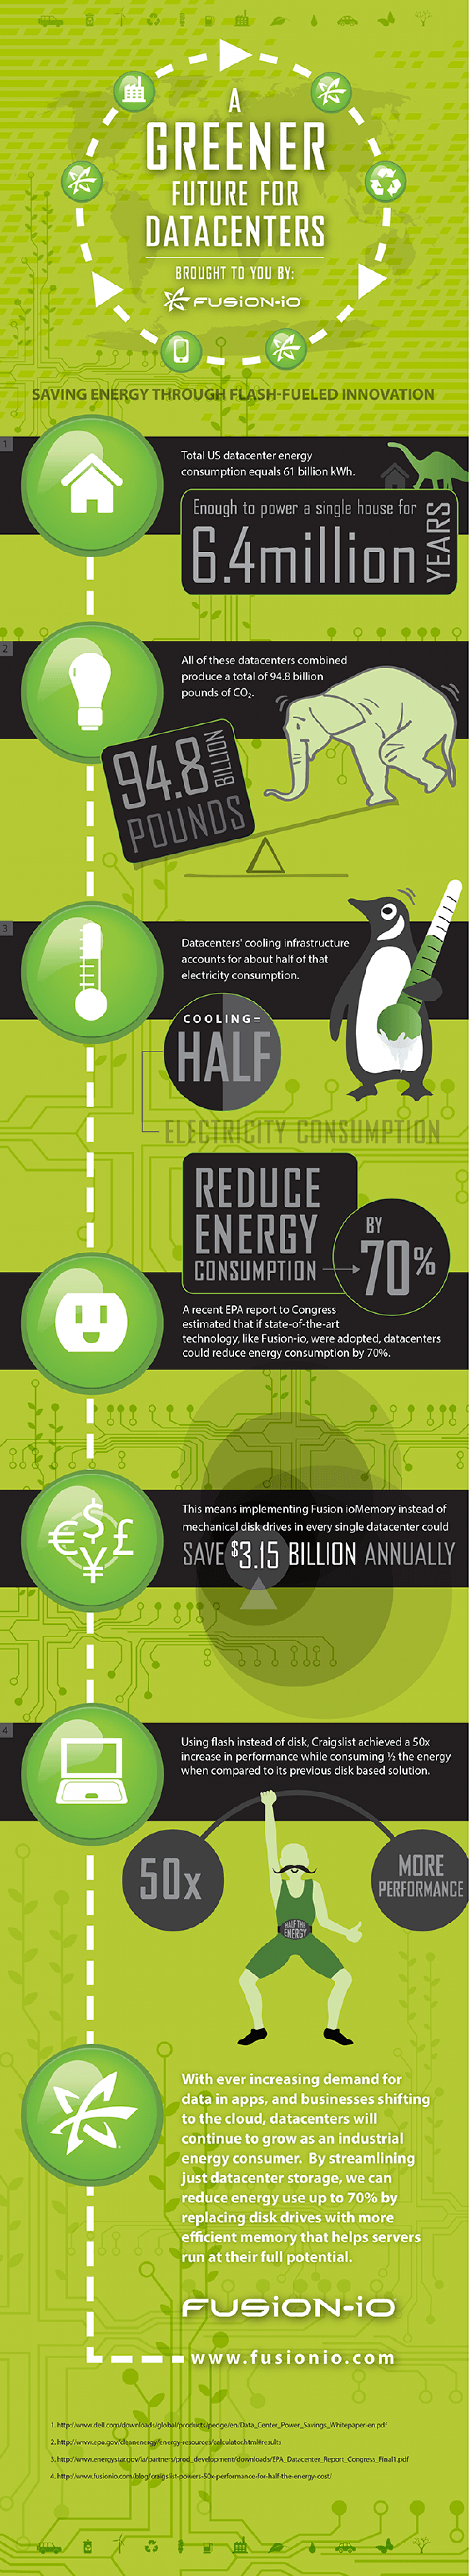 A Greener Future for Datacenters, brought to you by Fusion-io Infographic